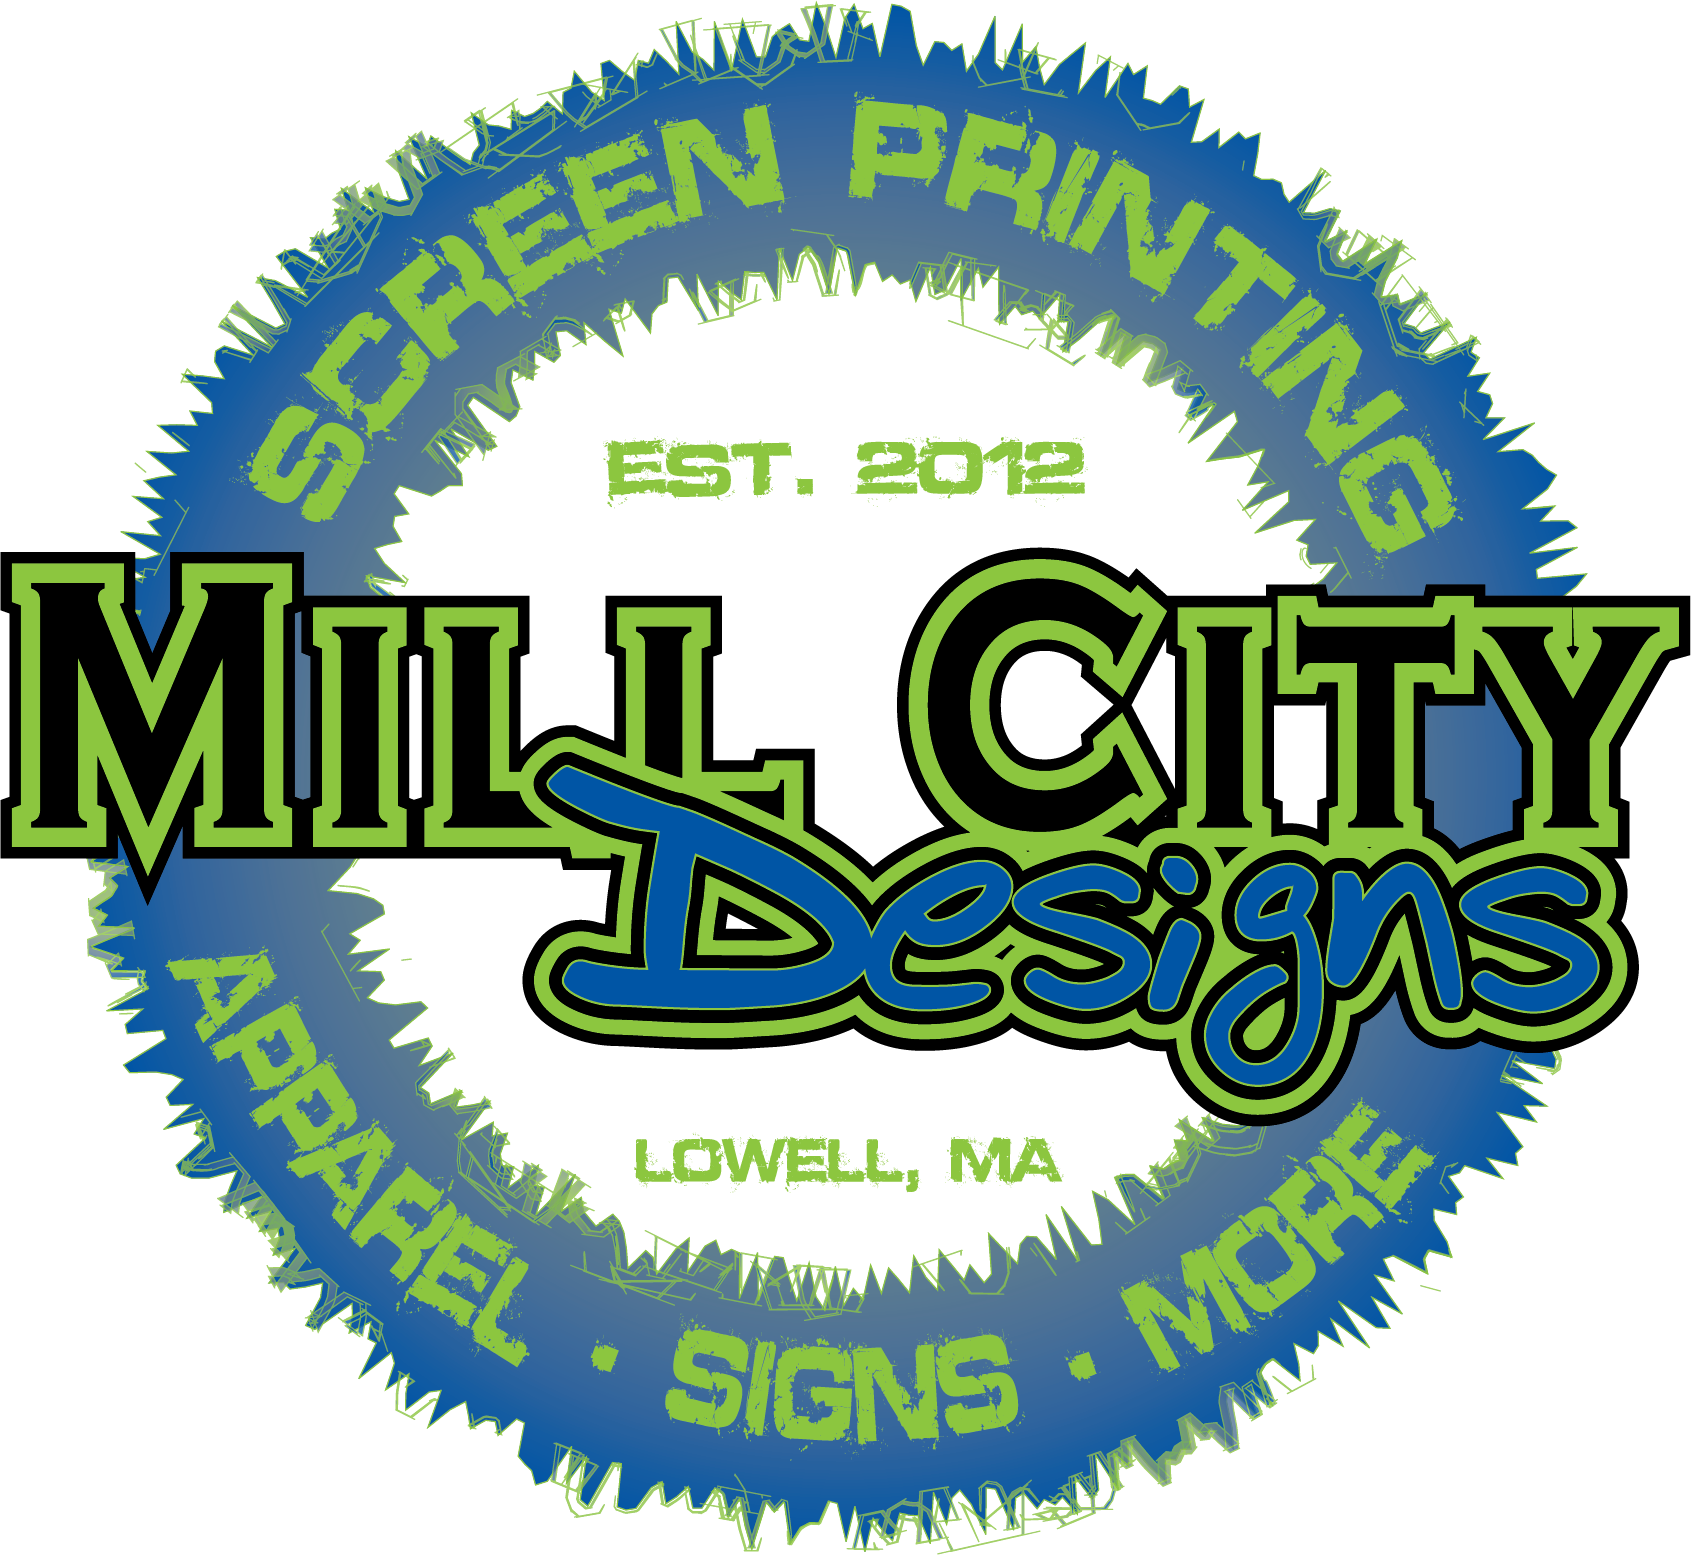 Mill City Designs